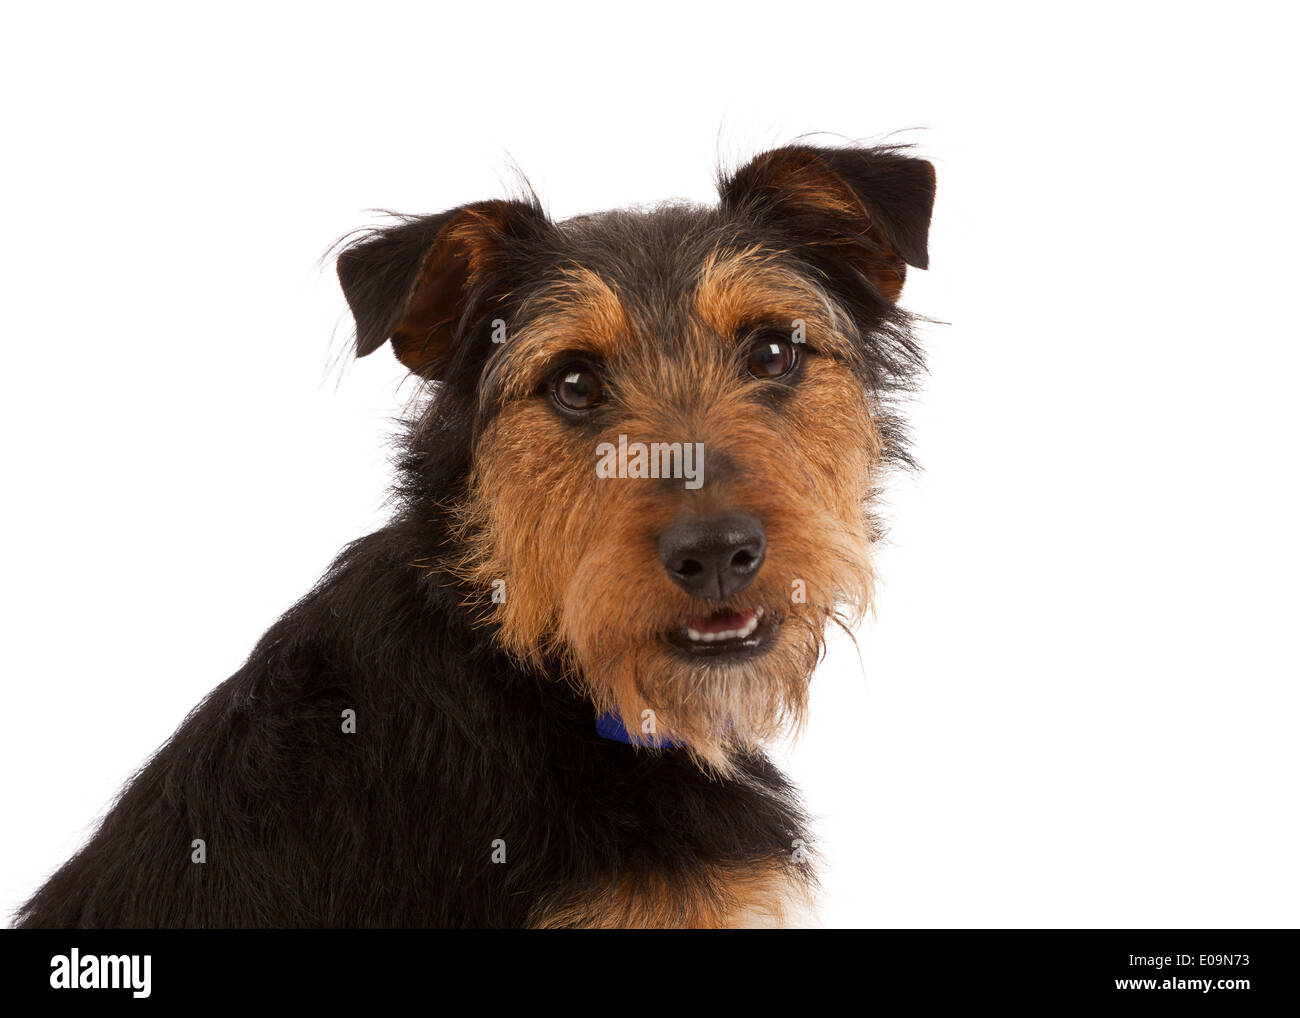 A Terrier dog portrait on a white back ground - Stock Image